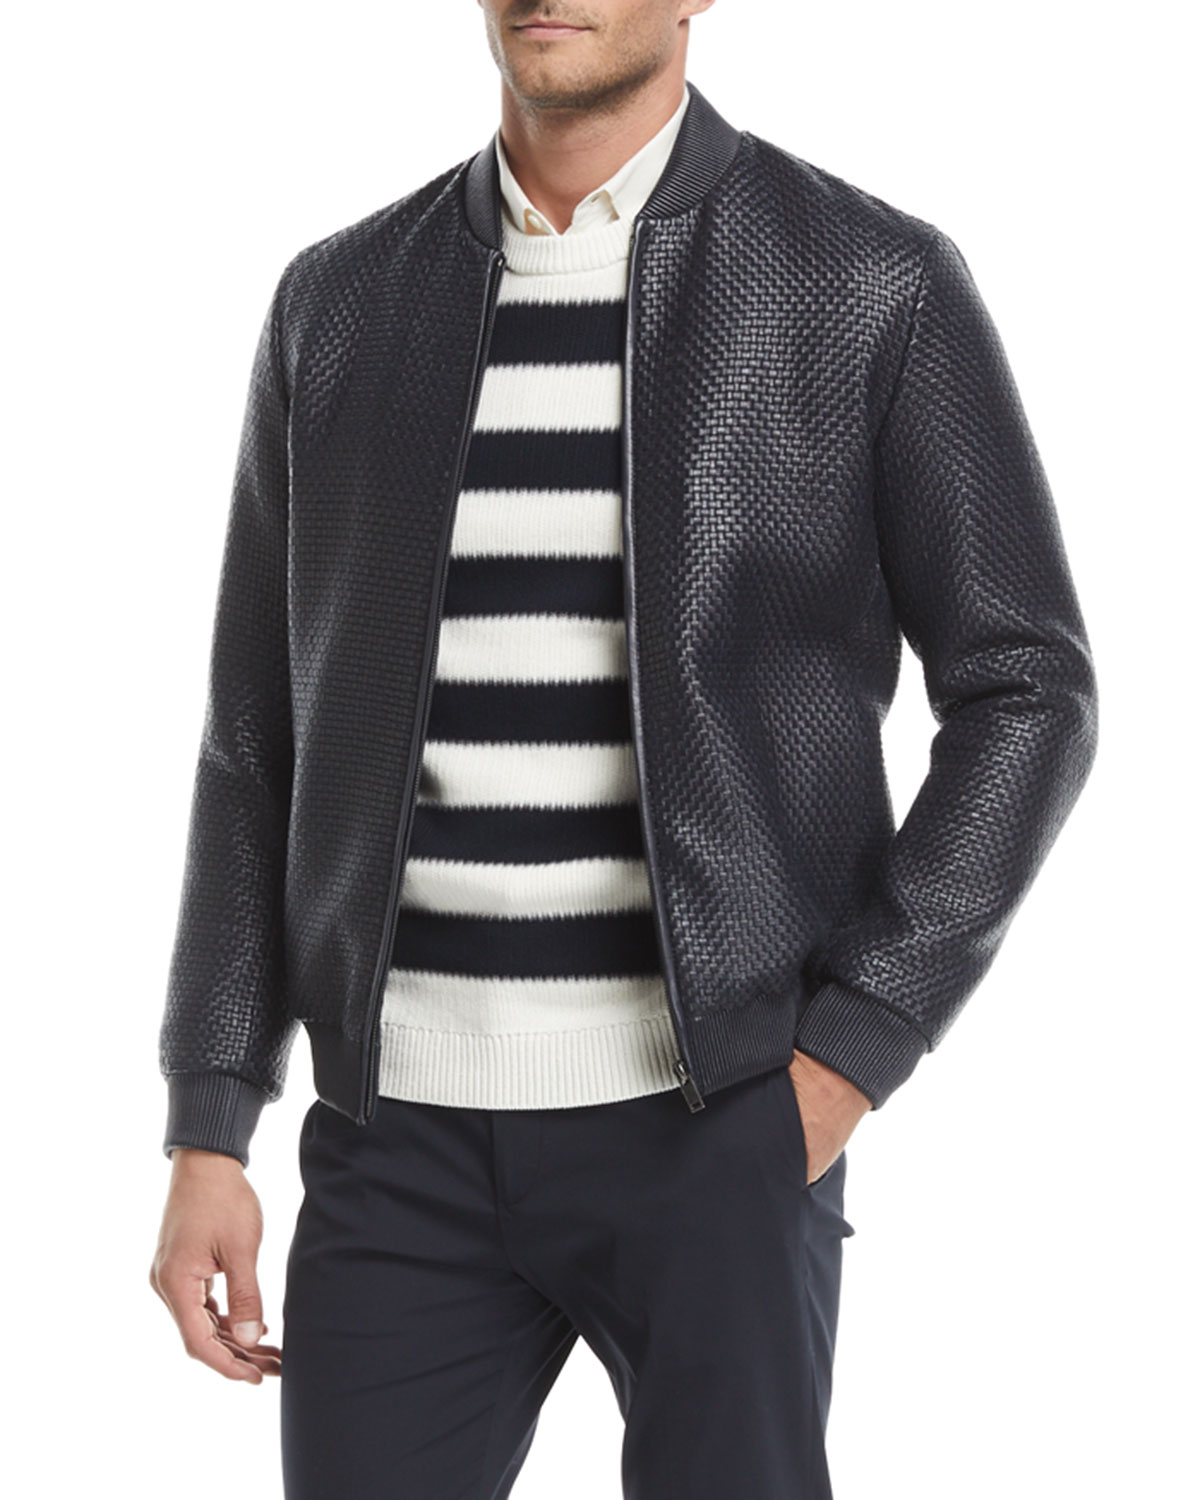 849680eb8 Sterling Woven-Leather Jacket